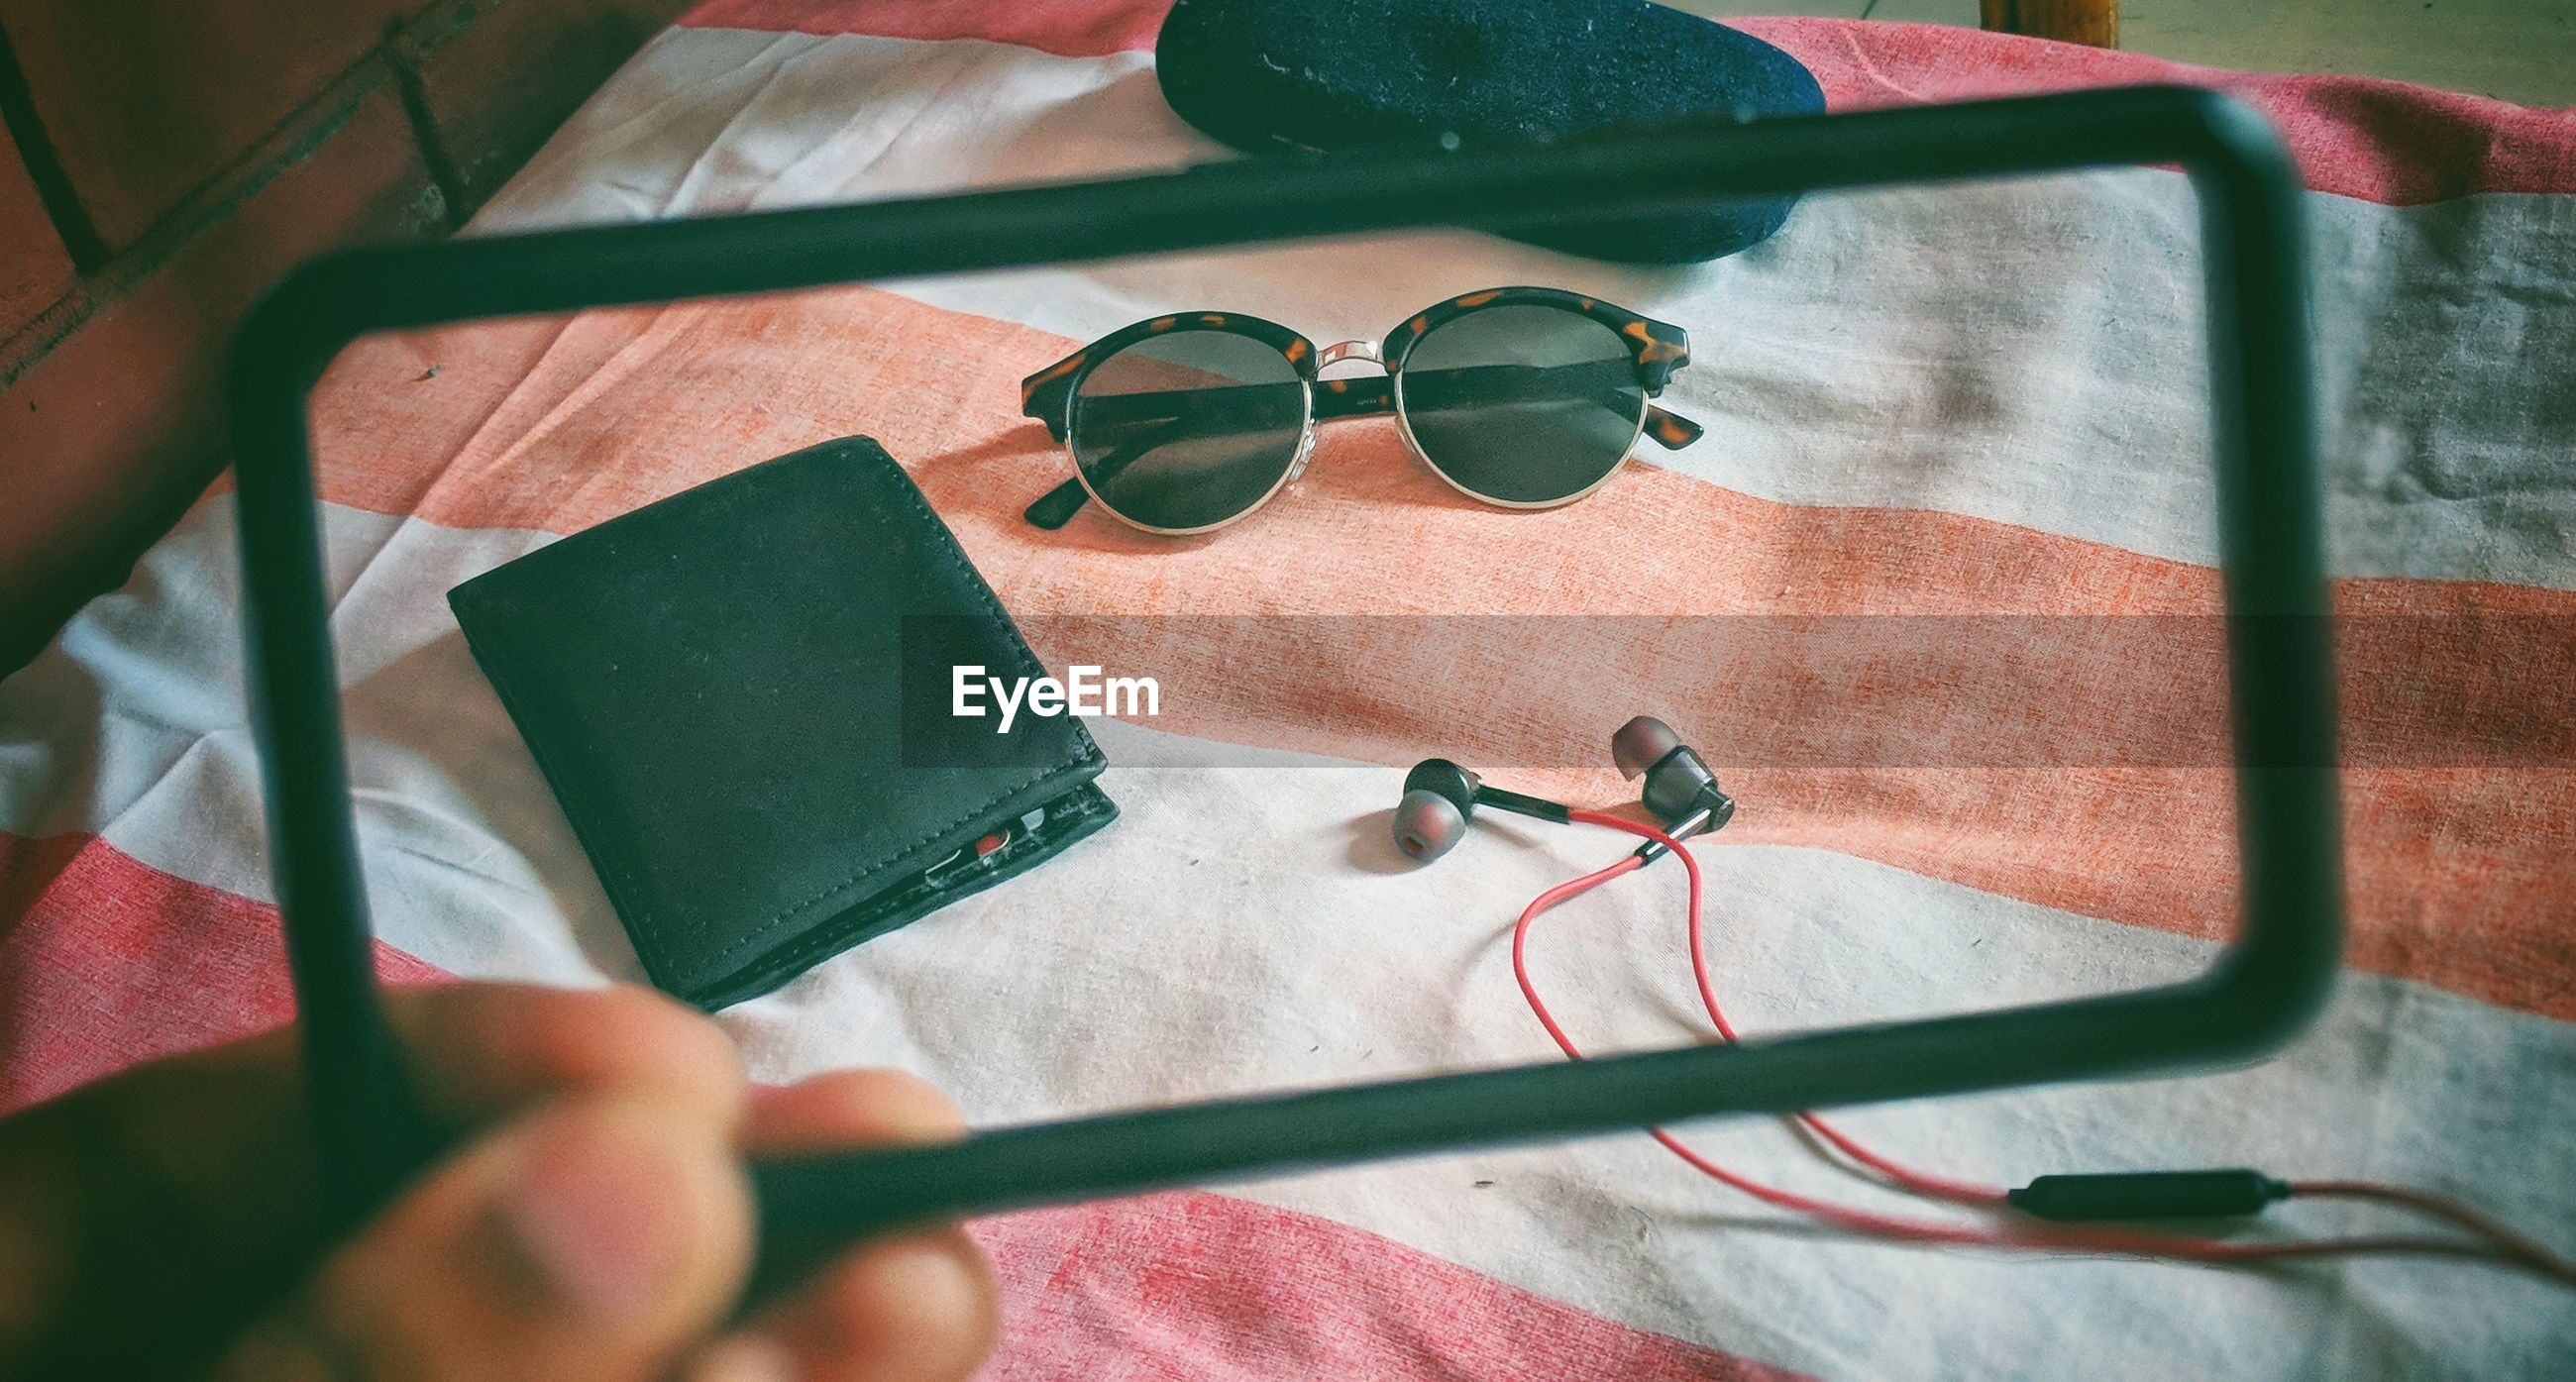 Cropped hand holding frame against purse with sunglasses and in-ear headphones on table